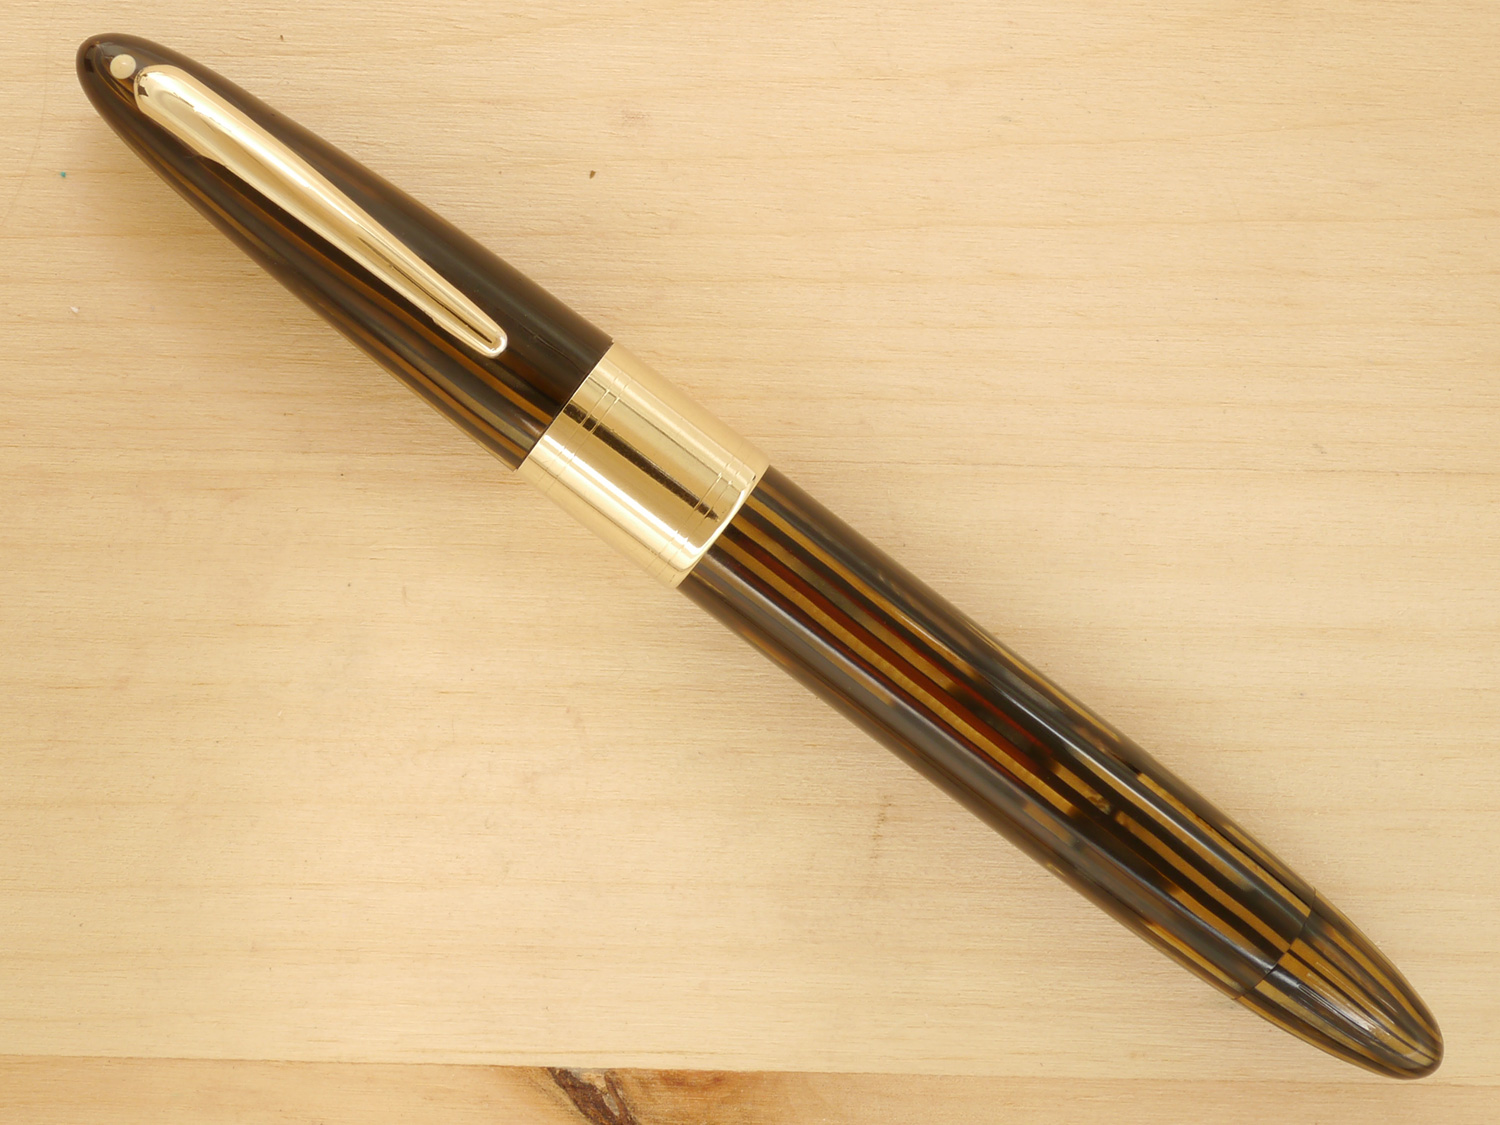 Sheaffer Triumph Valiant Vac Oversize, Golden Brown, F-M, capped